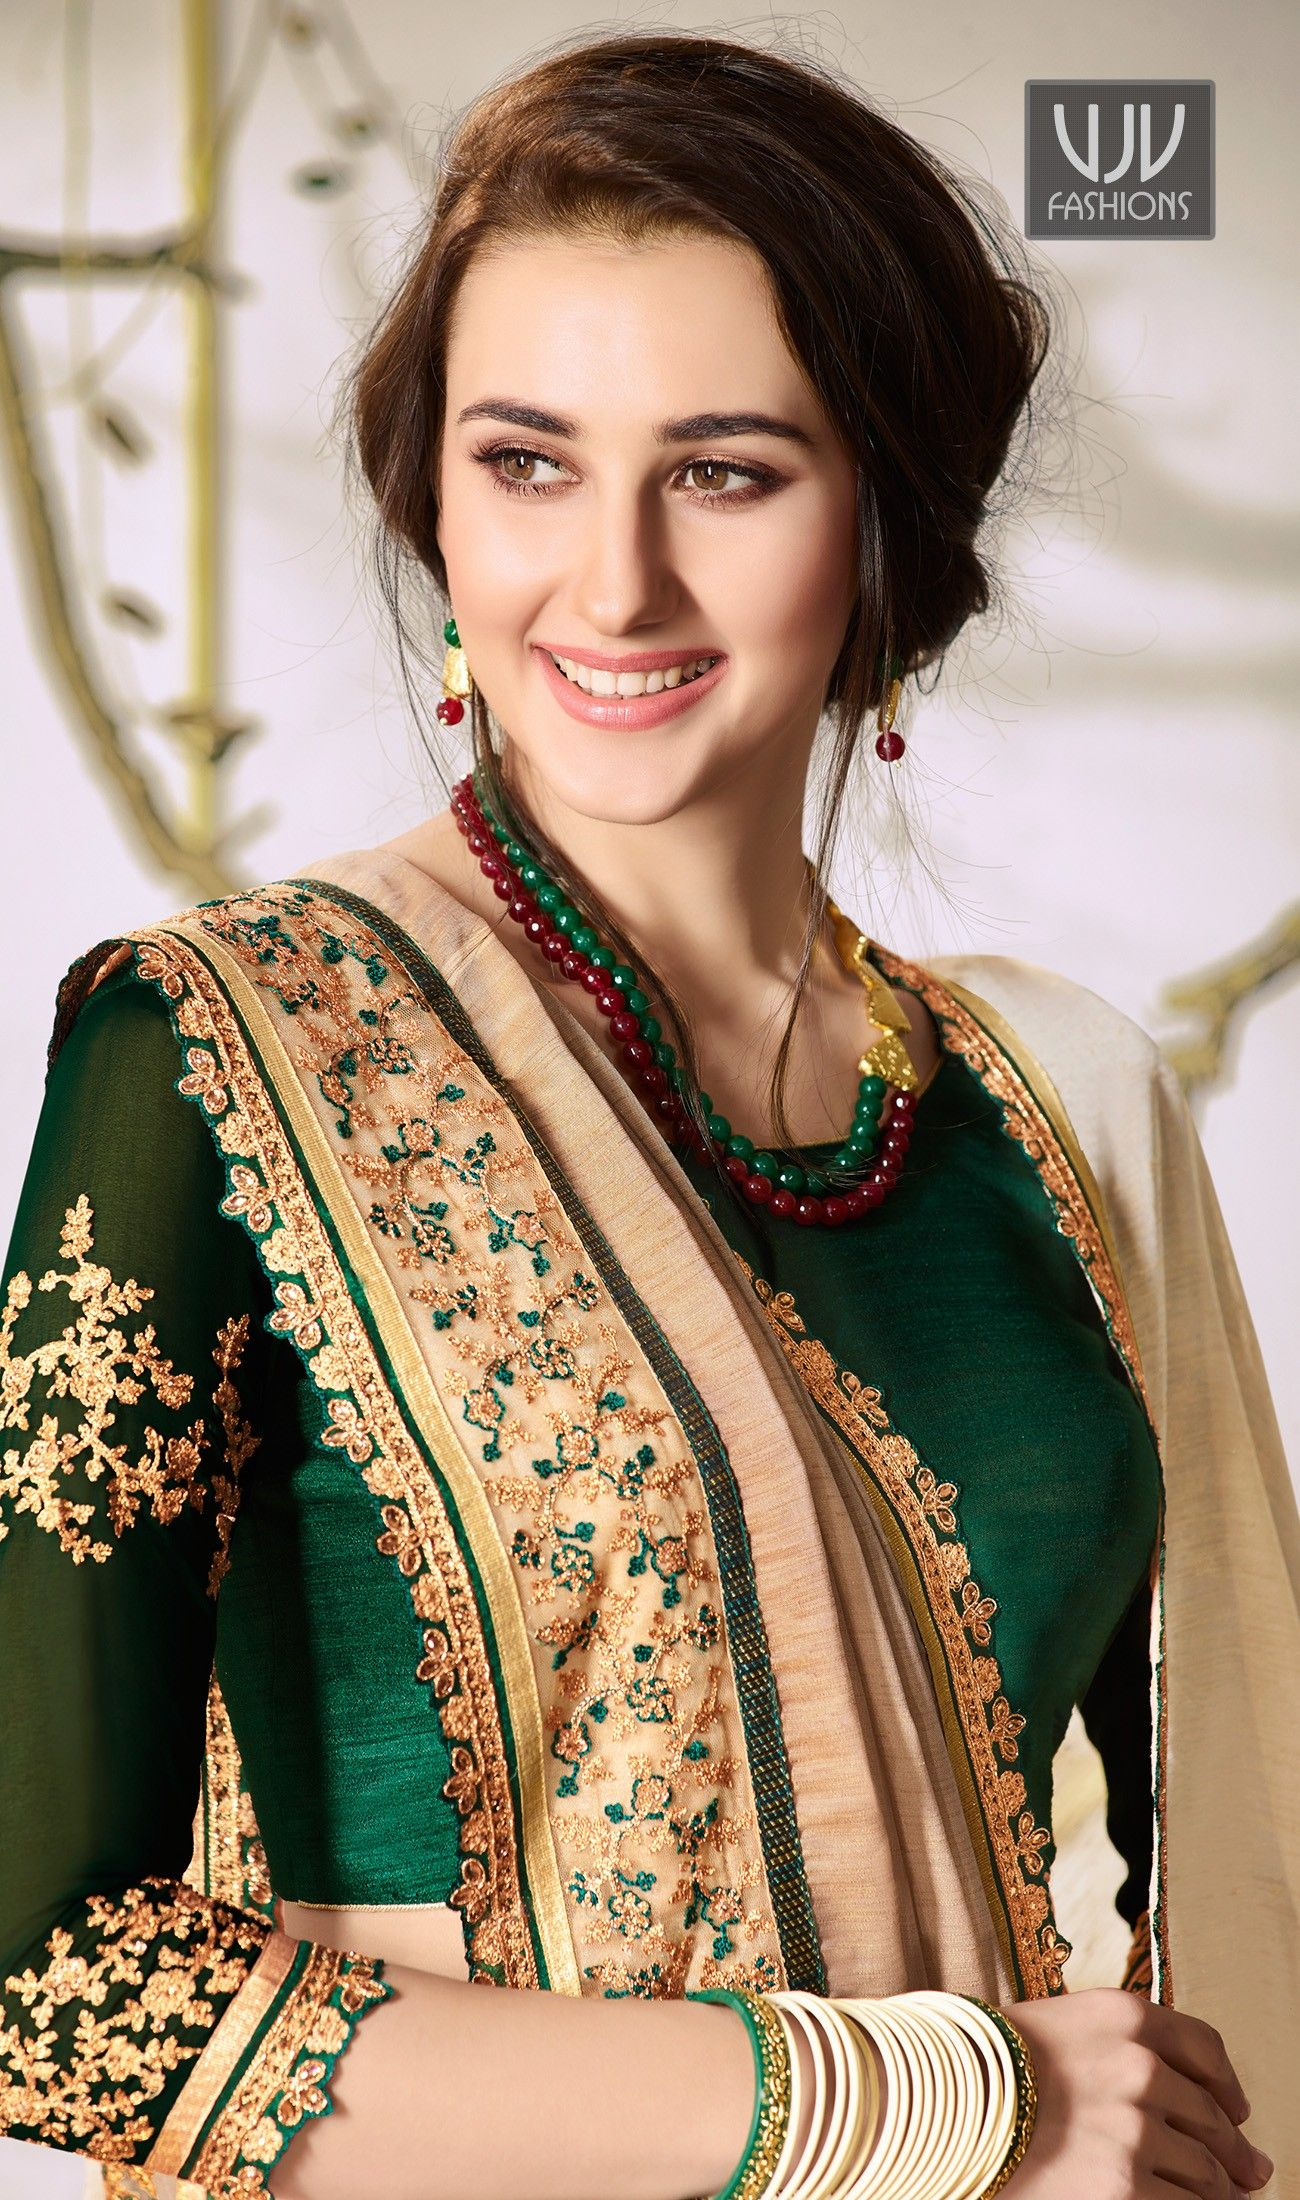 38622a3aeb70 Buy Online Stylish Designer Casual Saree, Embroidered Saree, and Party Wear  occasion special Stylish New sarees at vjv Fashions. Shop Designer wedding